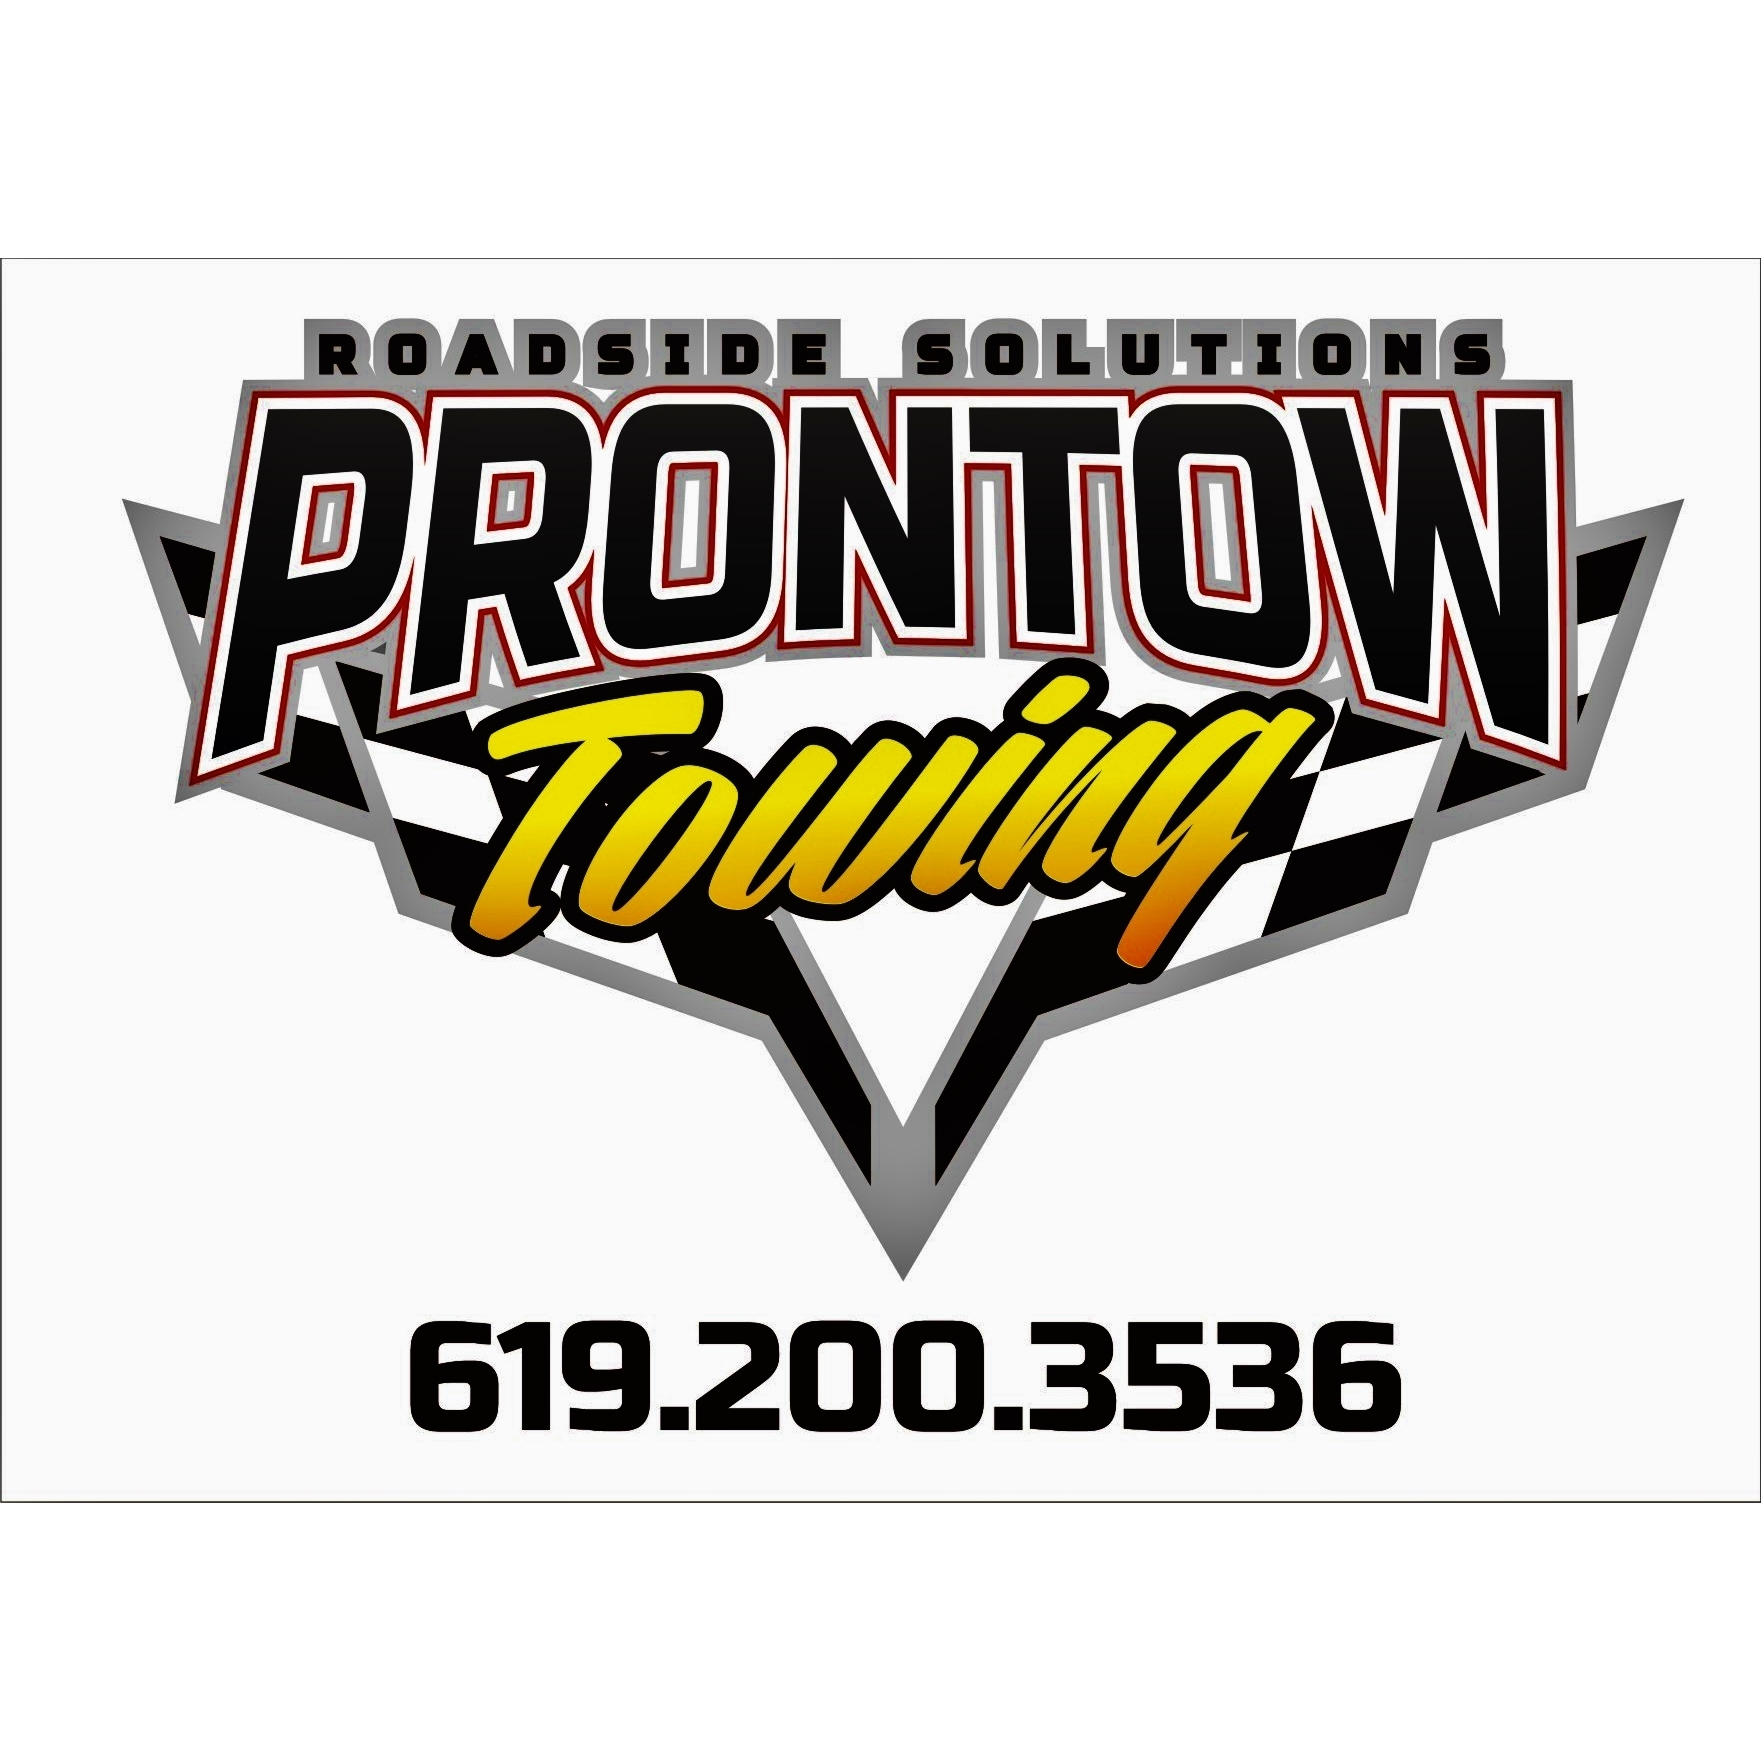 Prontow Towing Service